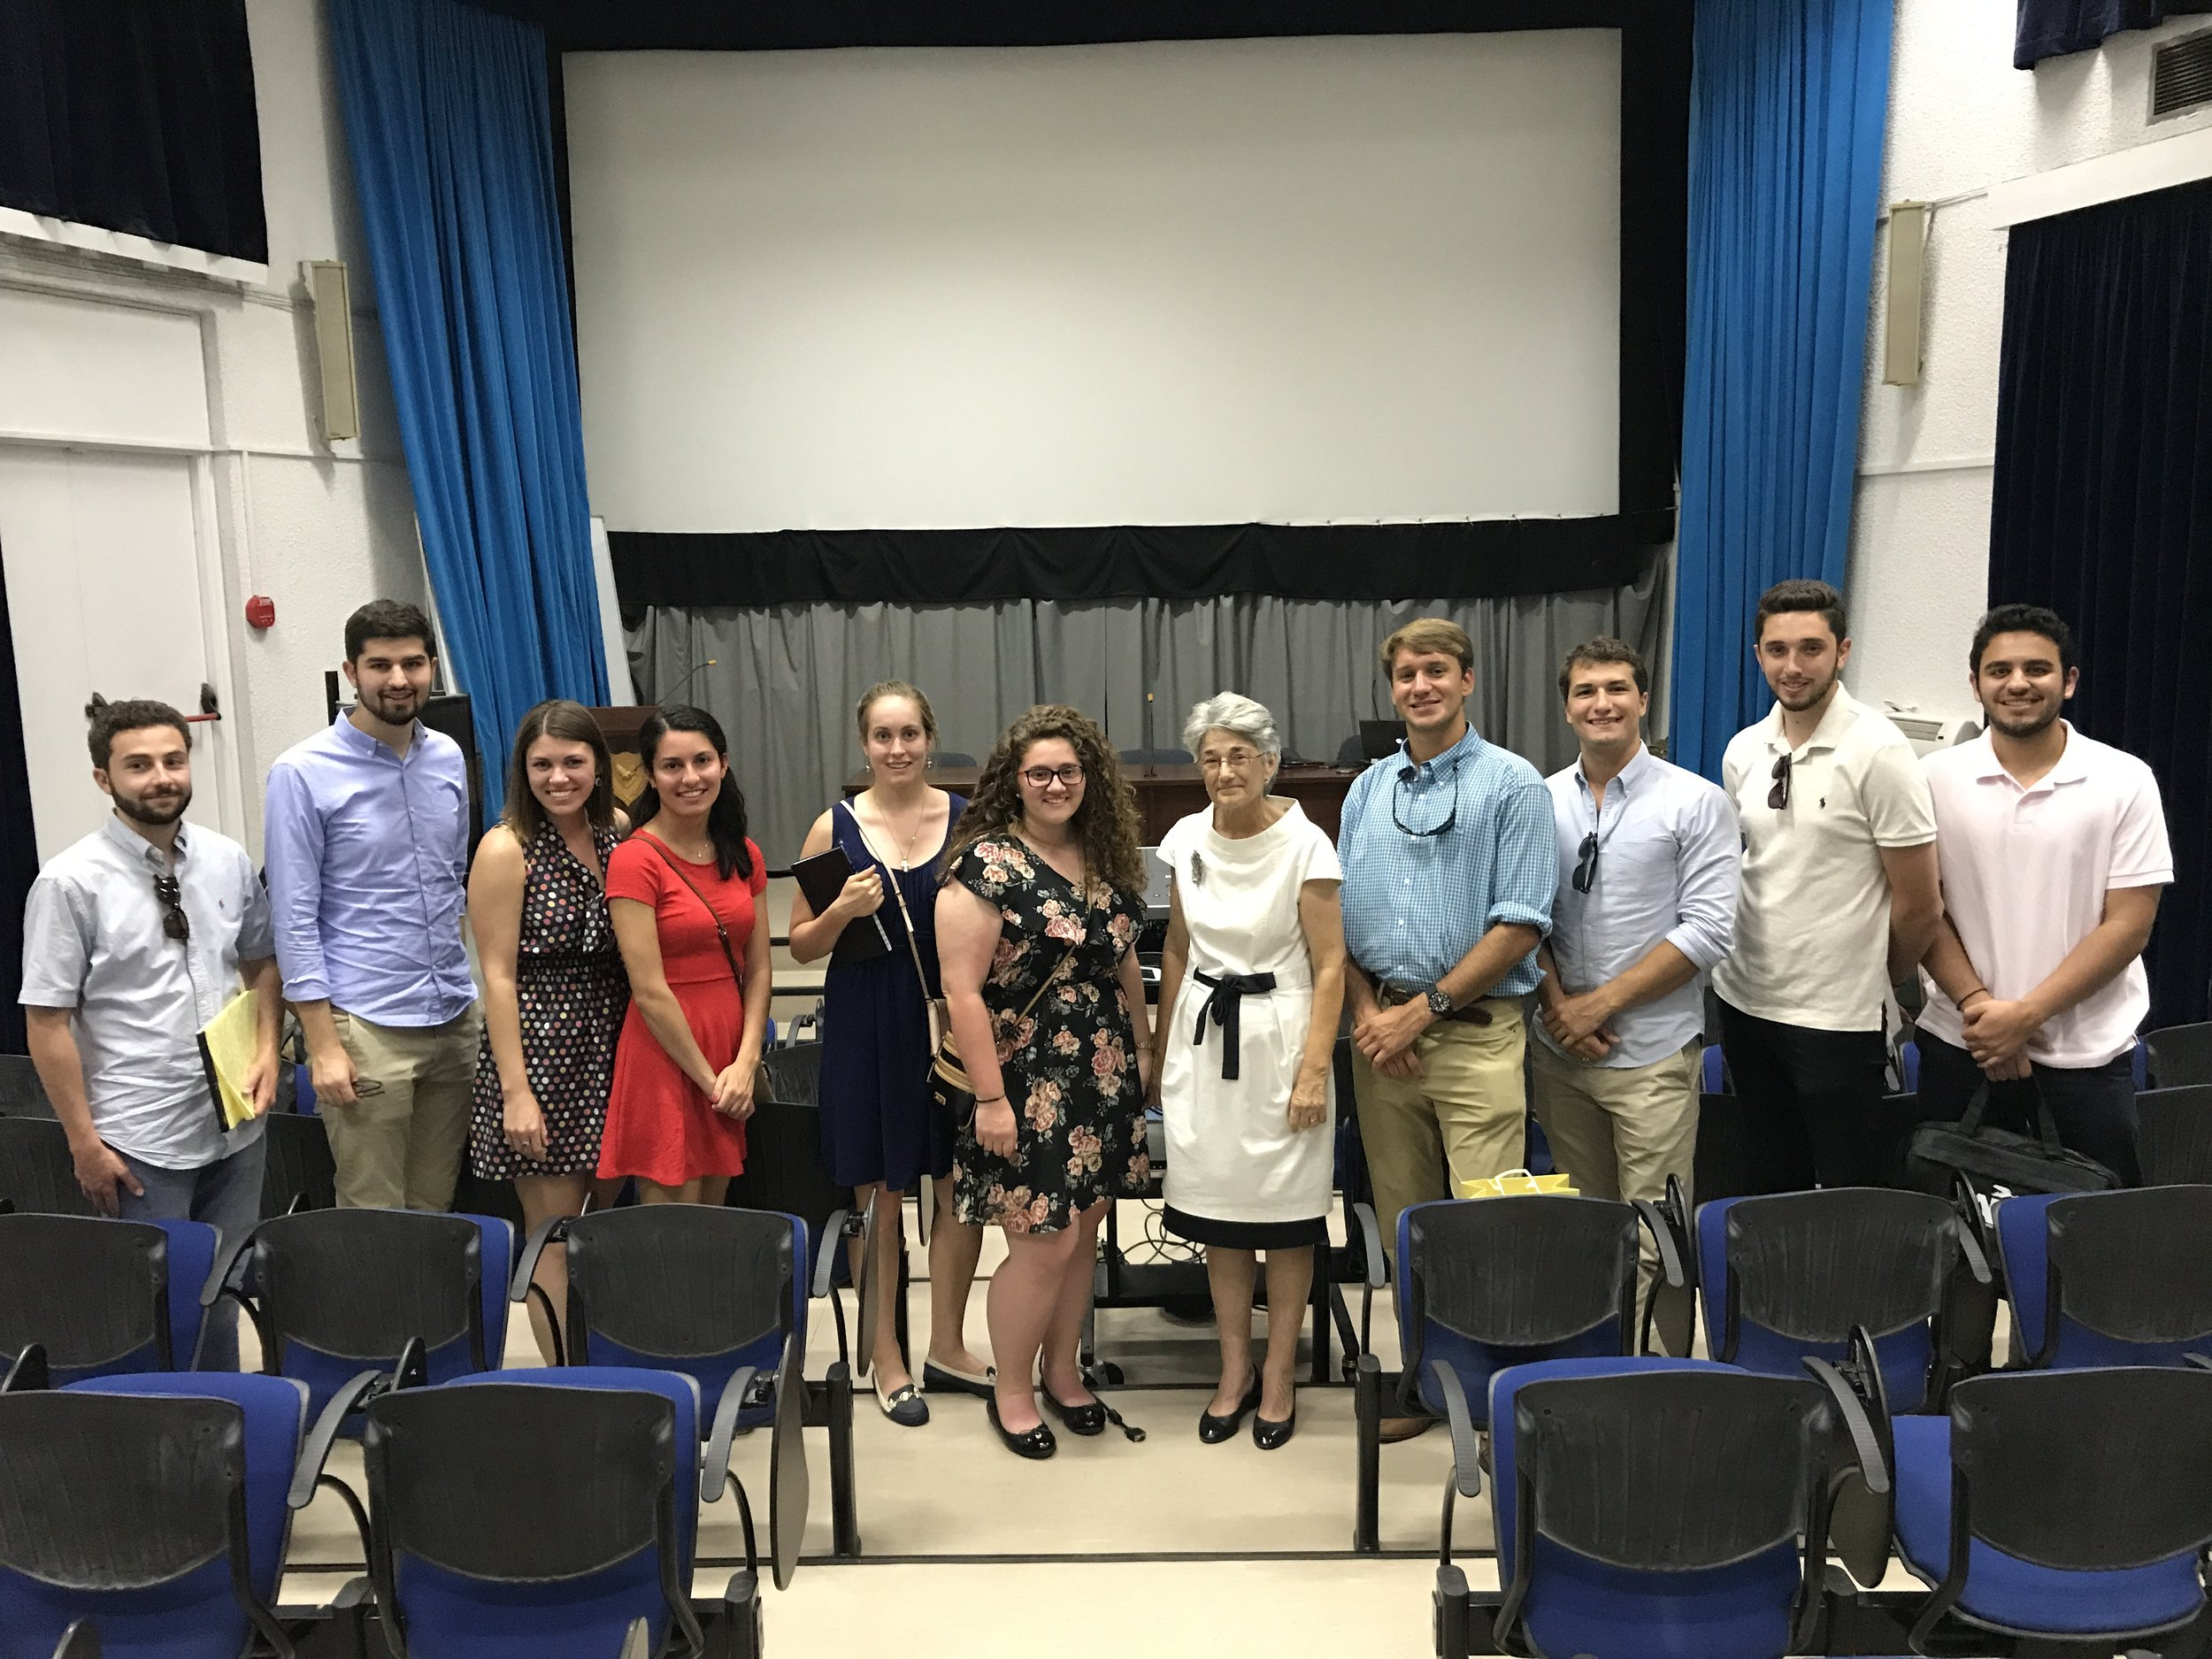 Titina Loizidou briefed the students on the history of Cyprus and her landmark legal victory against Turkey.